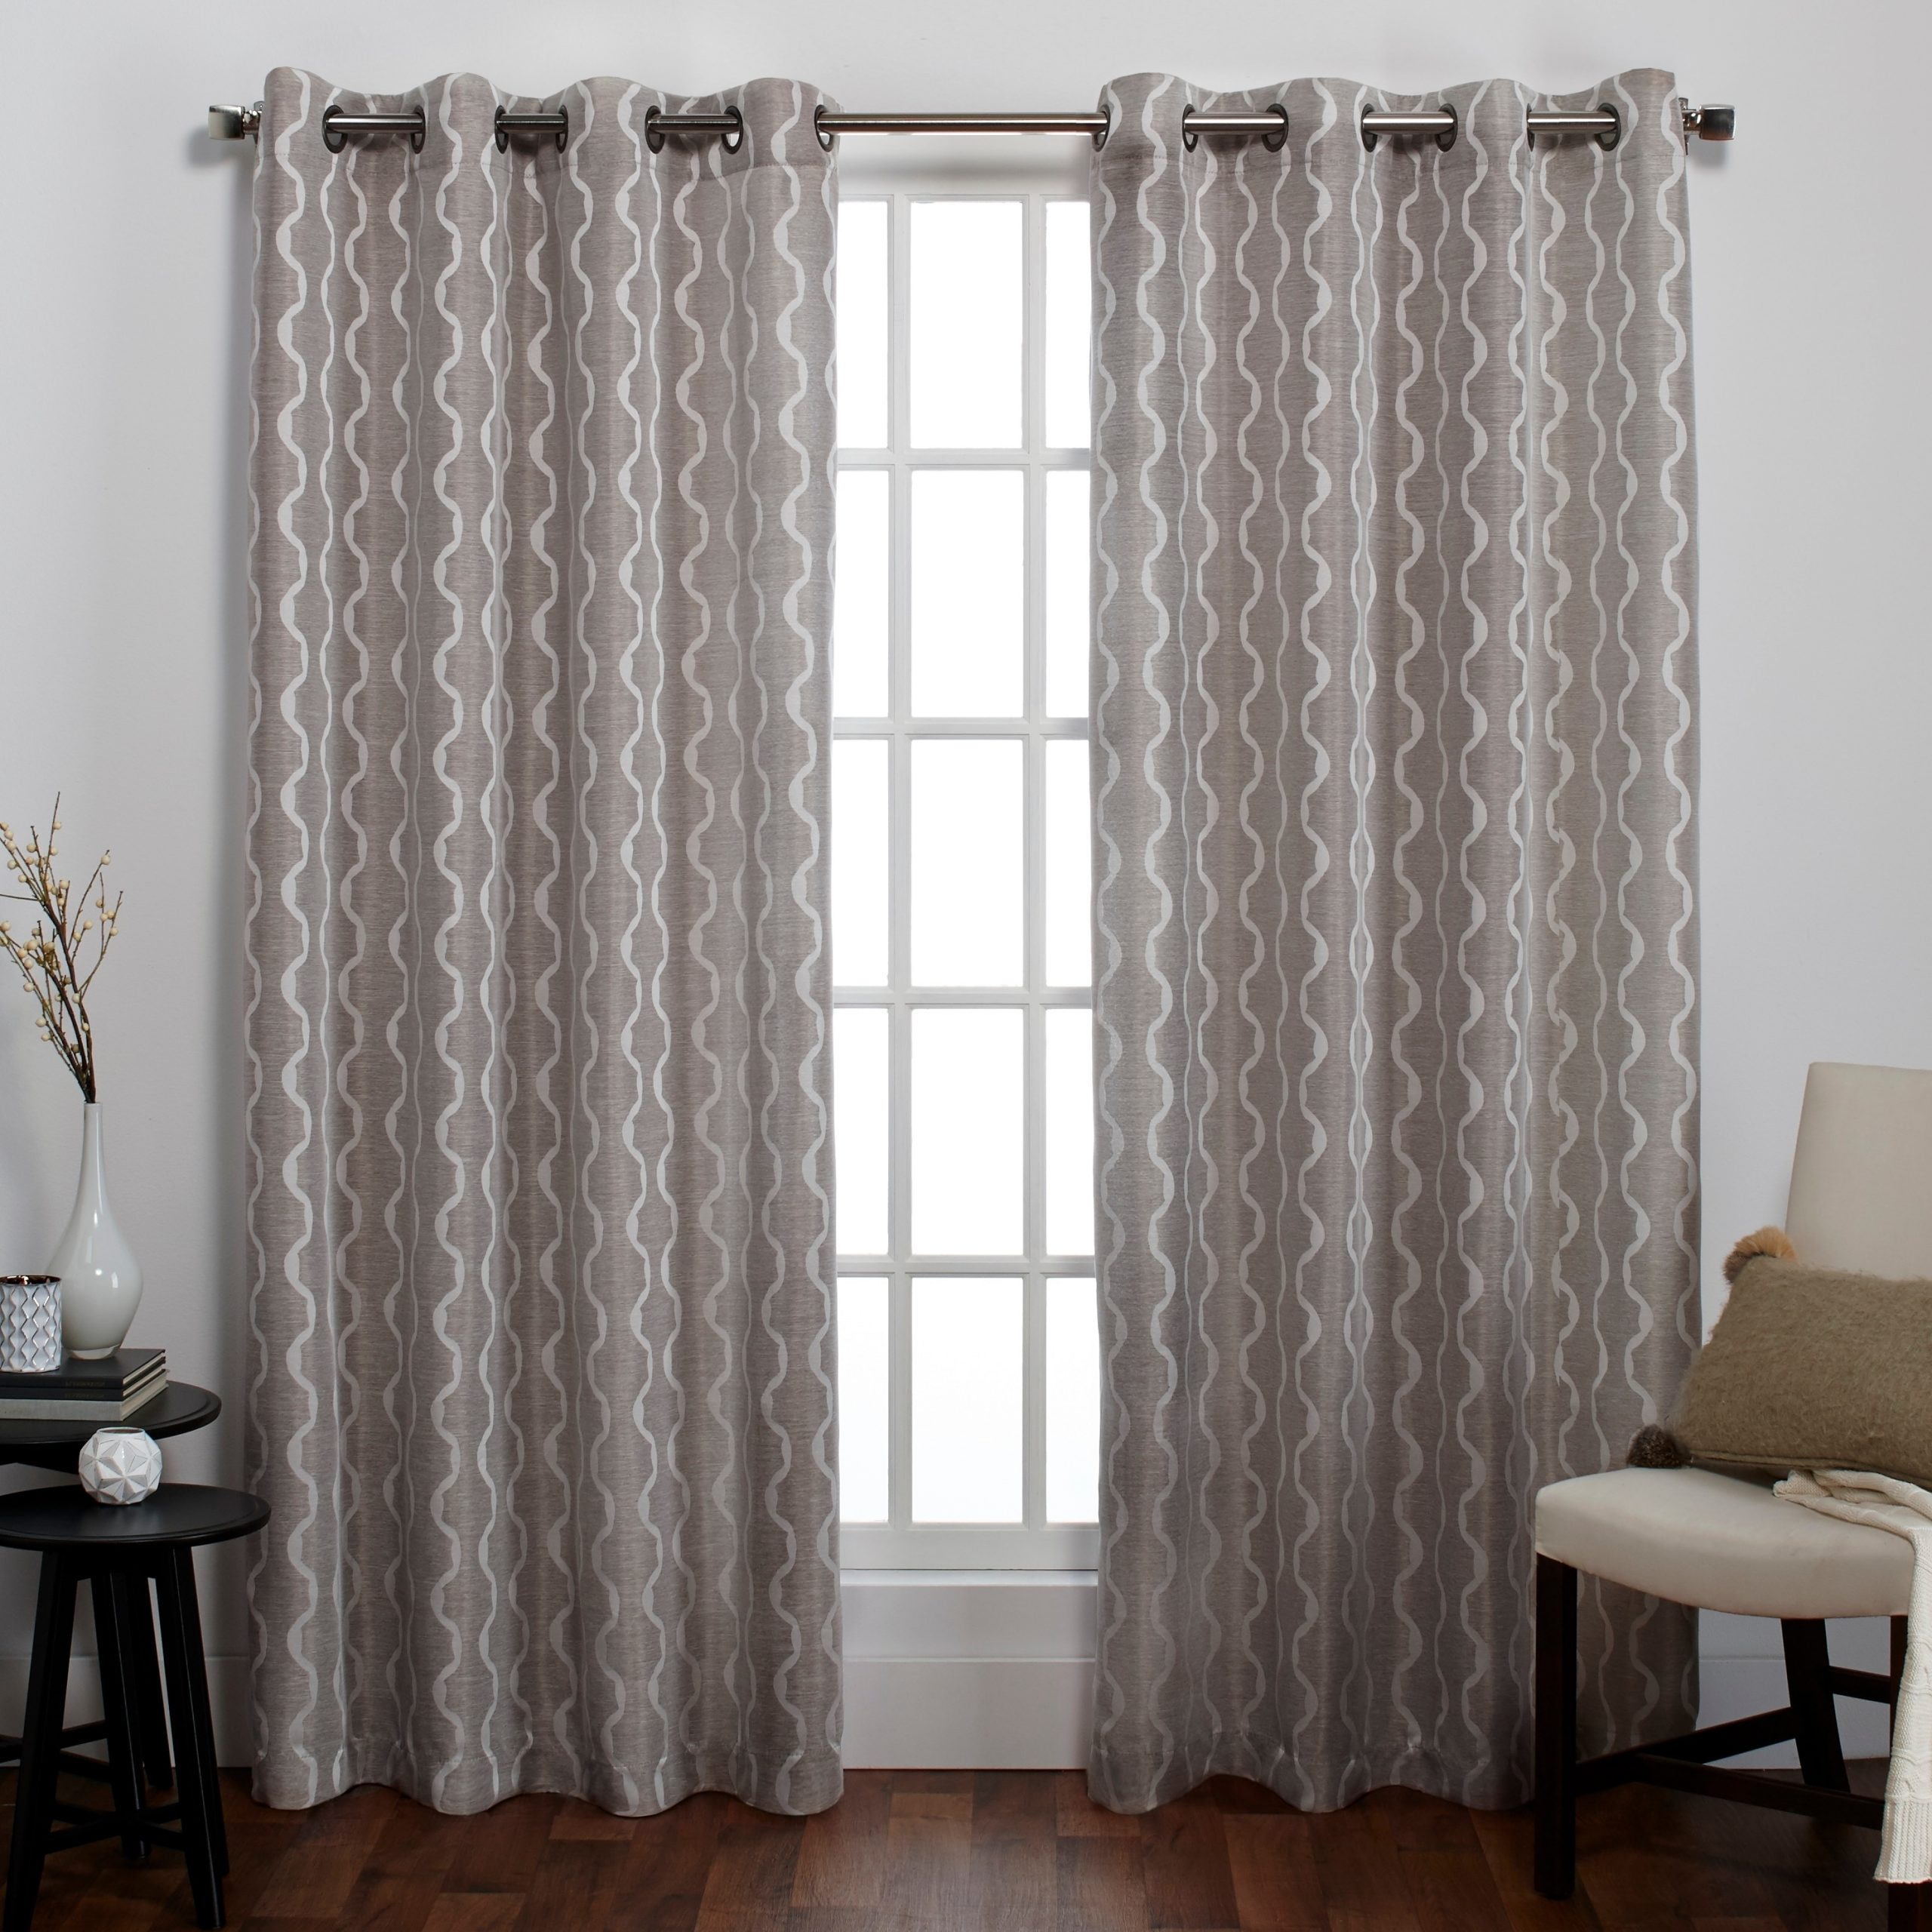 Baroque Linen Grommet Top Curtain Panel Pairs With Most Recent Ati Home Baroque Linen Look Window Curtain Panel Pair With (View 2 of 20)